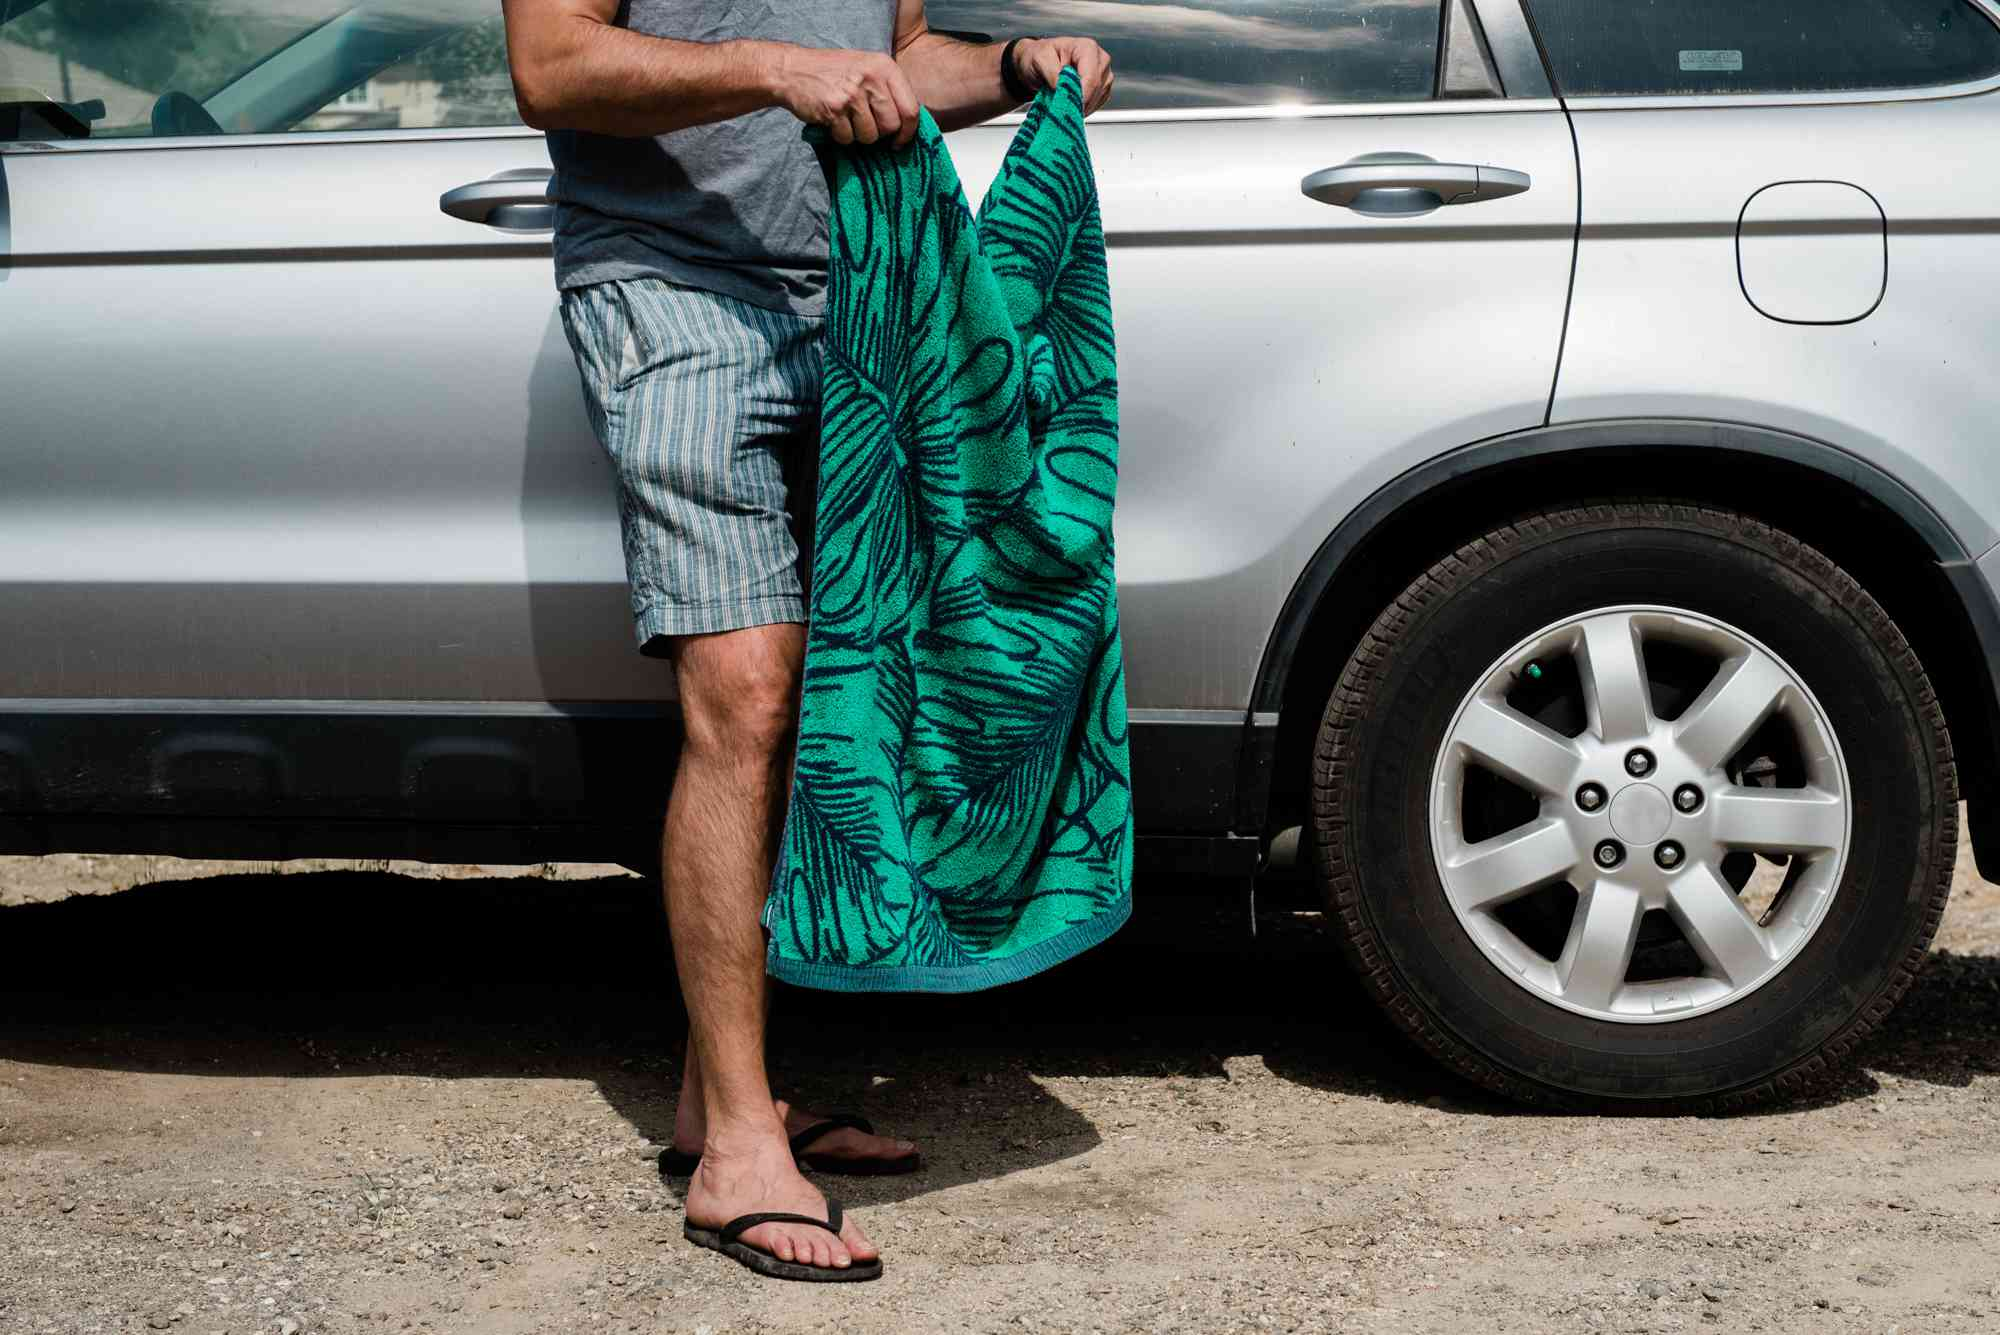 shaking out a sandy beach towel